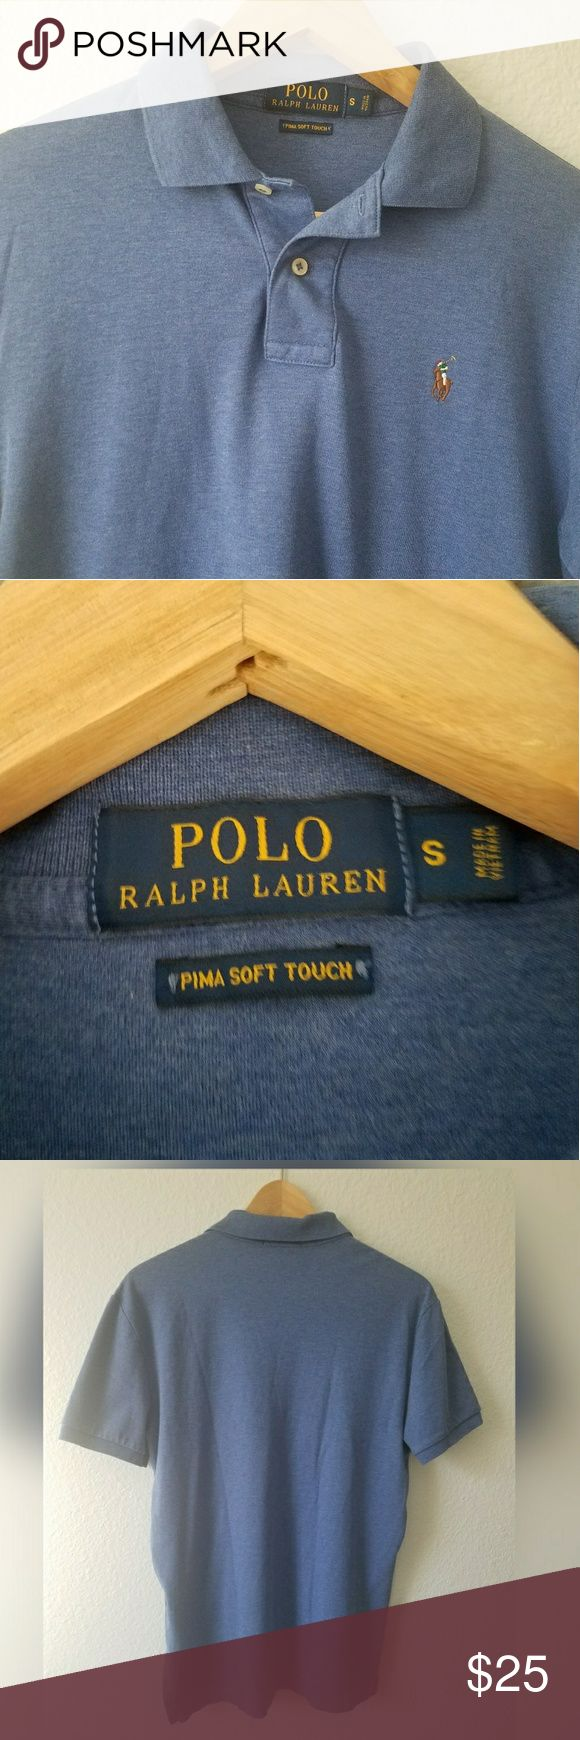 Friday Sale🎉 Ralph Lauren blue polo Ralph Lauren blue polo prima soft touch. This polo has a longer back side than font. Measurments 24 inches in the front from shoulder to bottom and 26 inches in the back from shoulder to back bottom. The size is small measures 20 inches from armpit to armpit. Worn once by my husband now it's too small for him. Polo by Ralph Lauren Shirts Polos